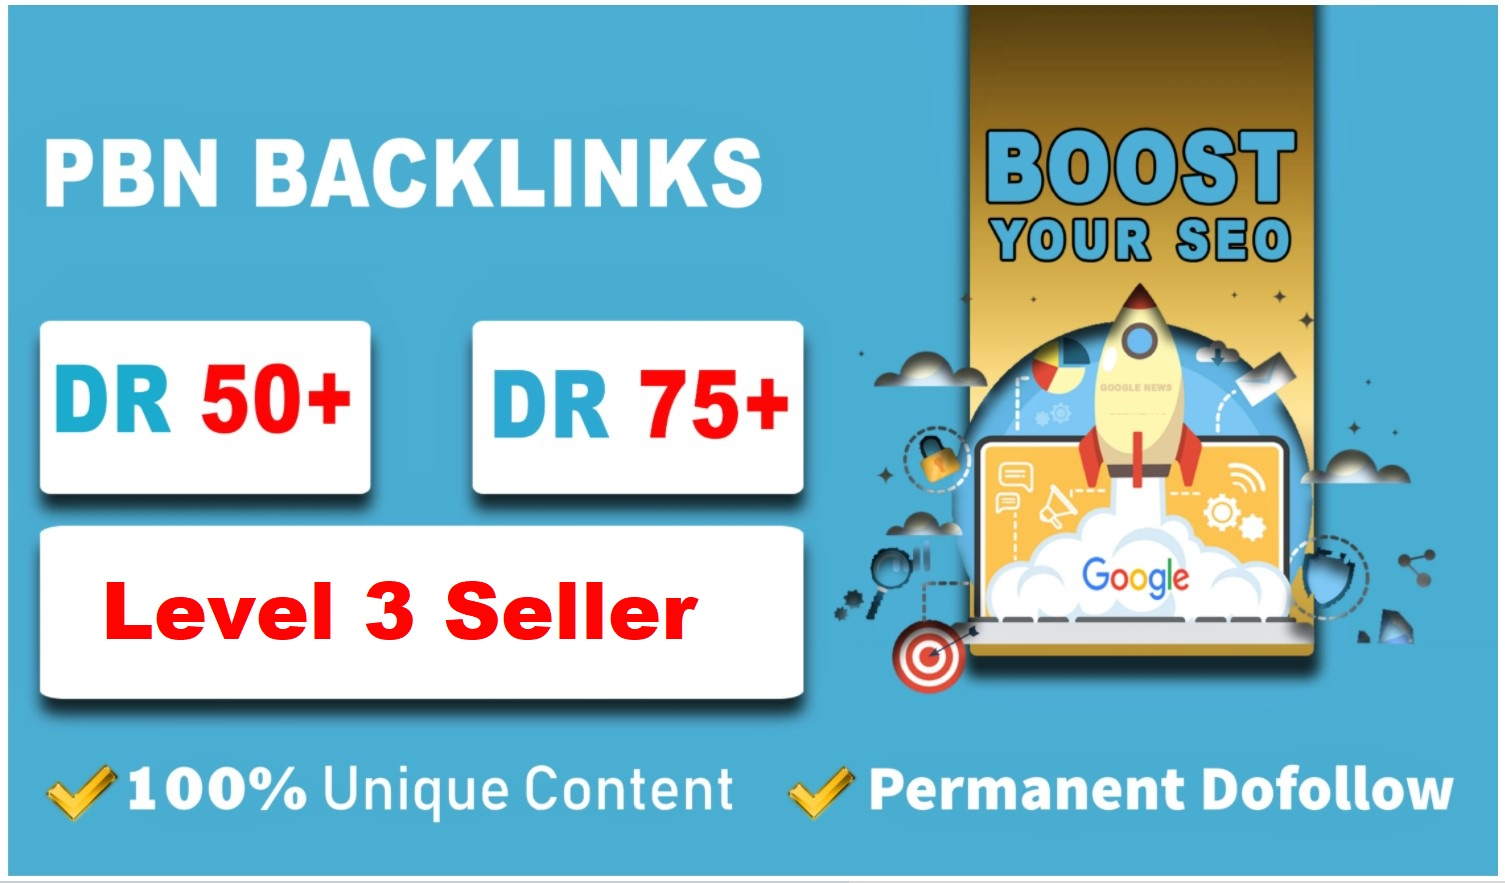 Provide you 10 PBN links from DR 50+